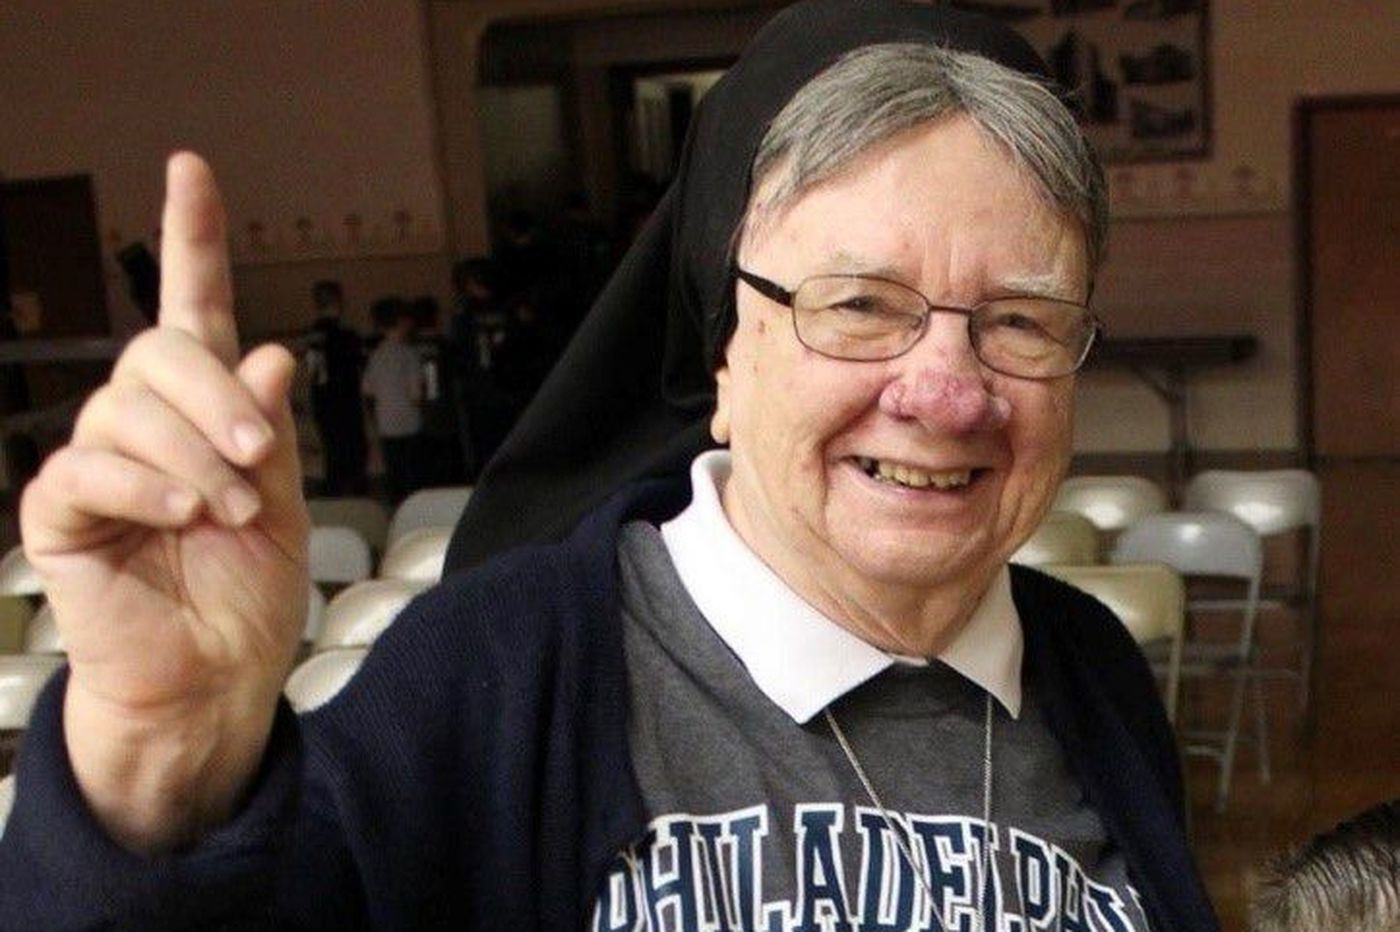 Sister Irene Loretta Cassady, 86, was a 'beacon of light' at a Northeast Philly school